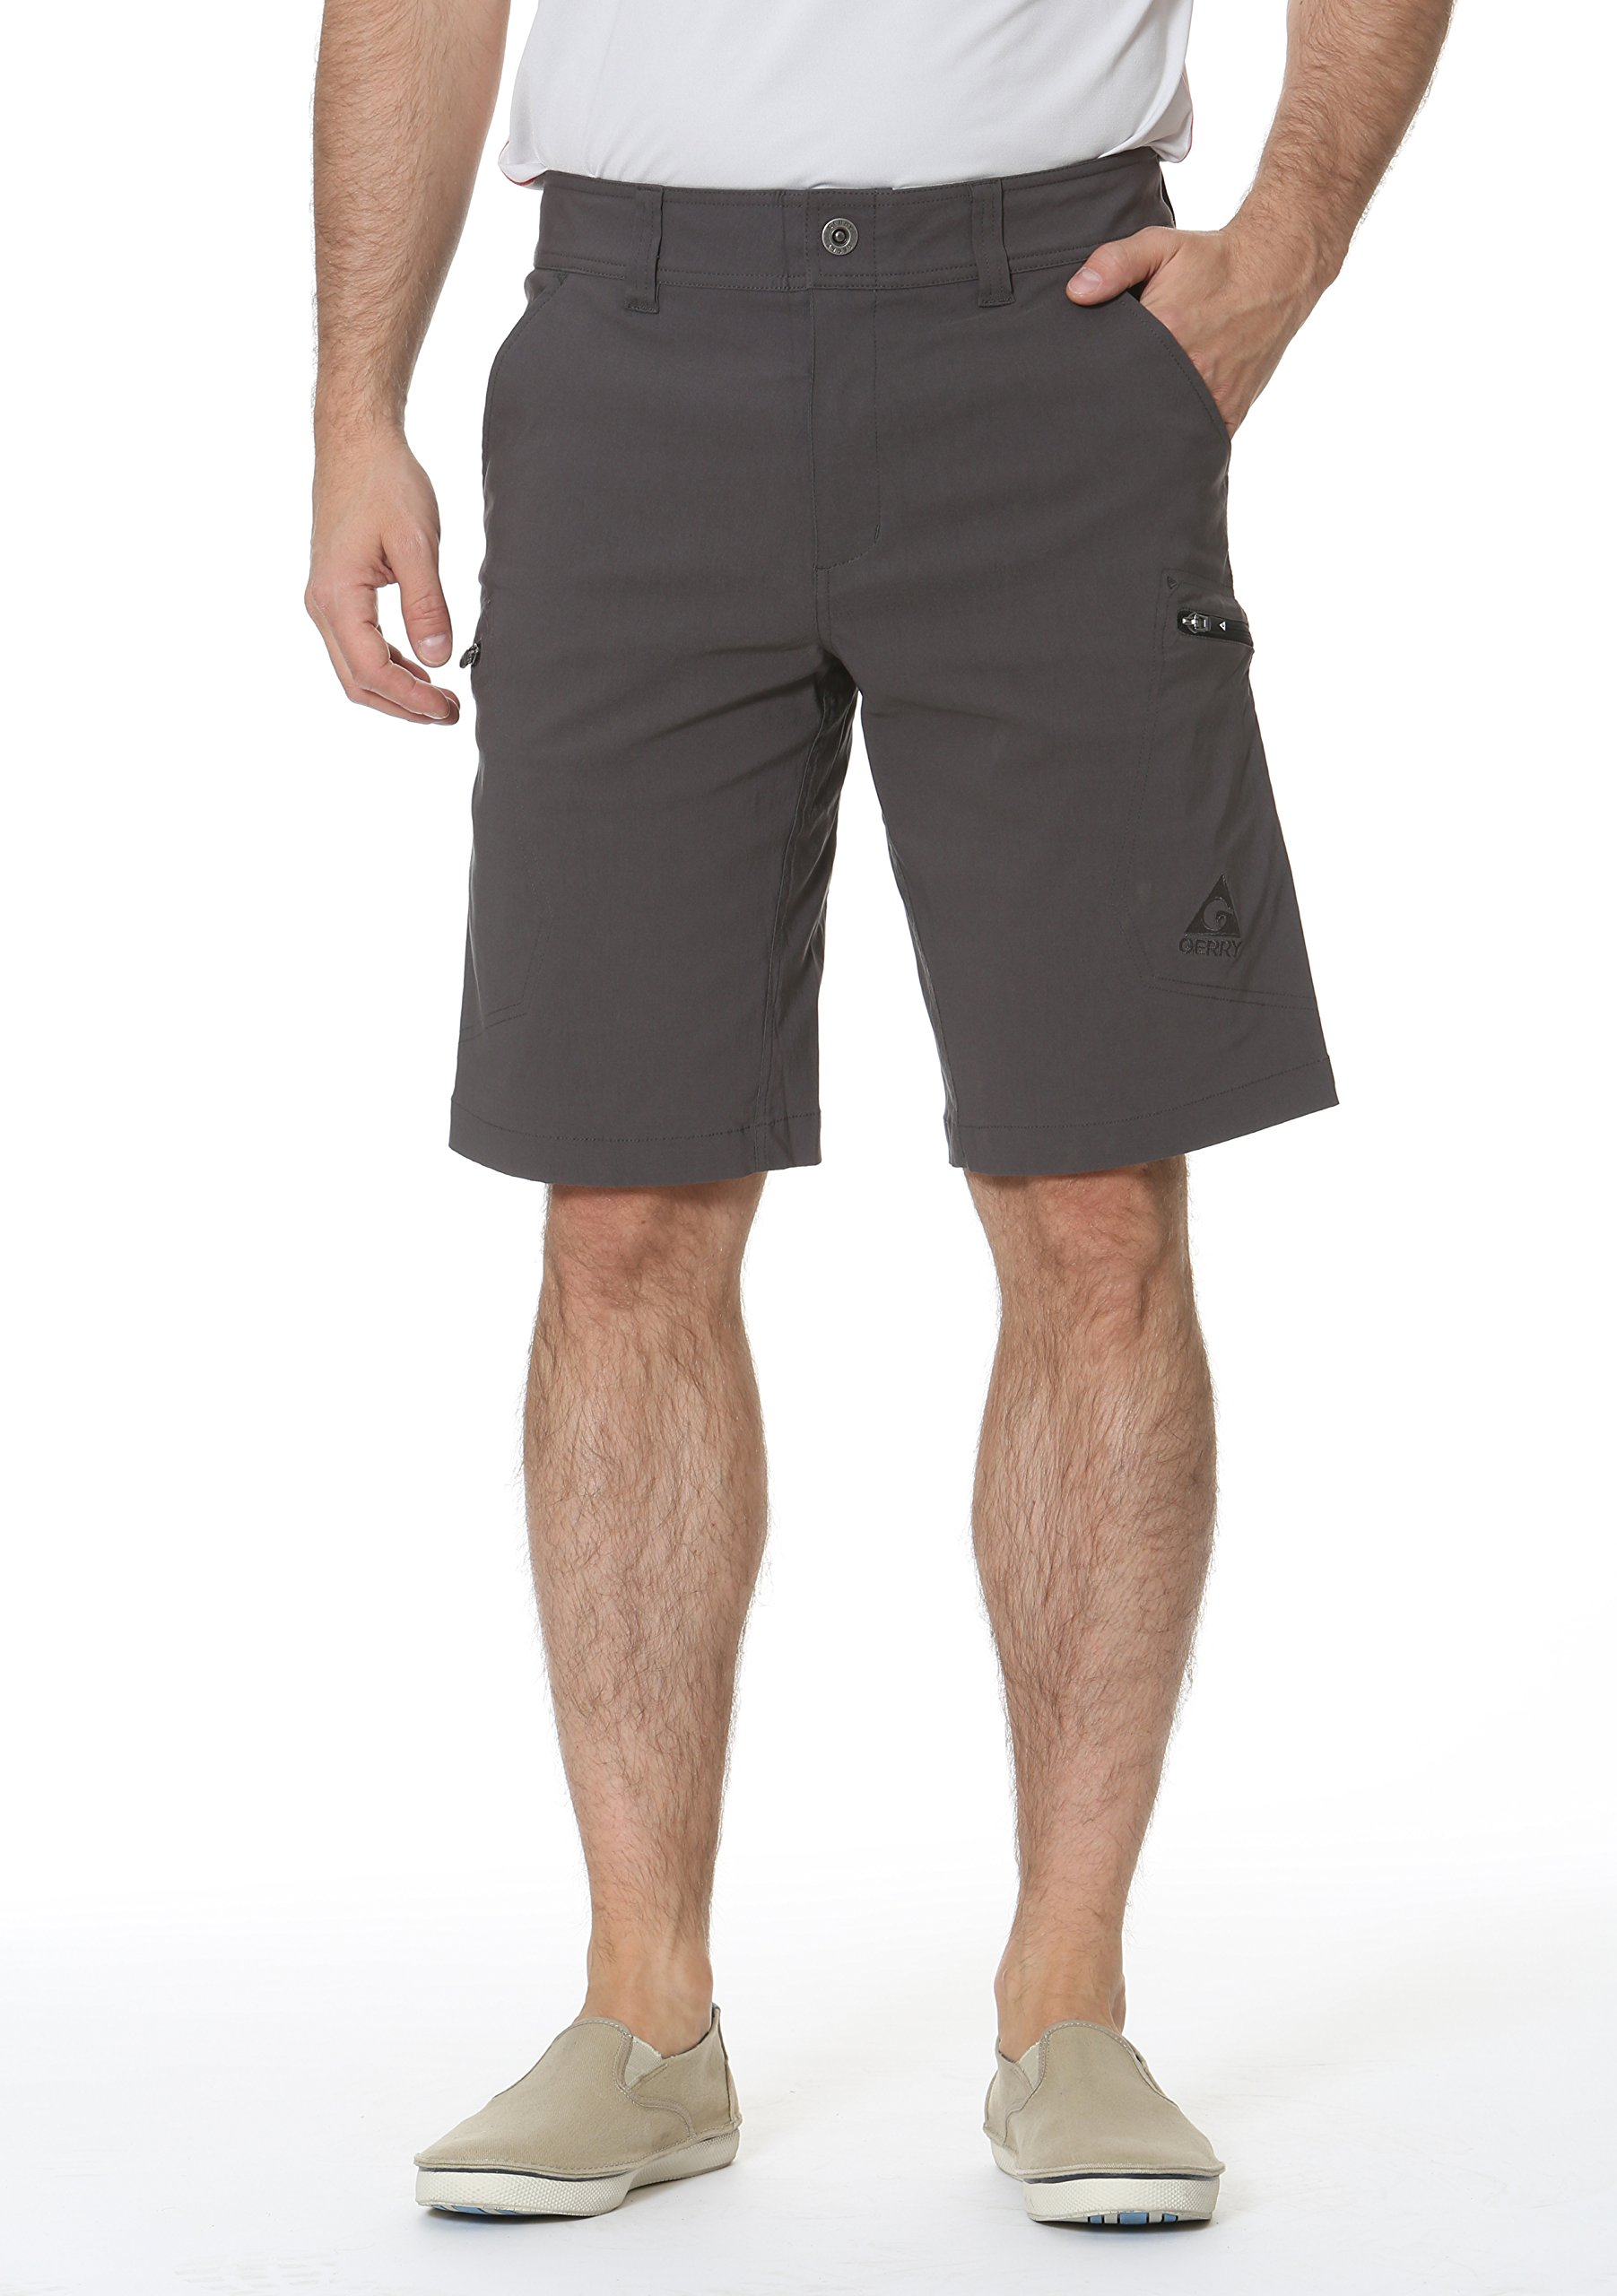 Gerry Stretch River Hiking Short (36, Slate)…